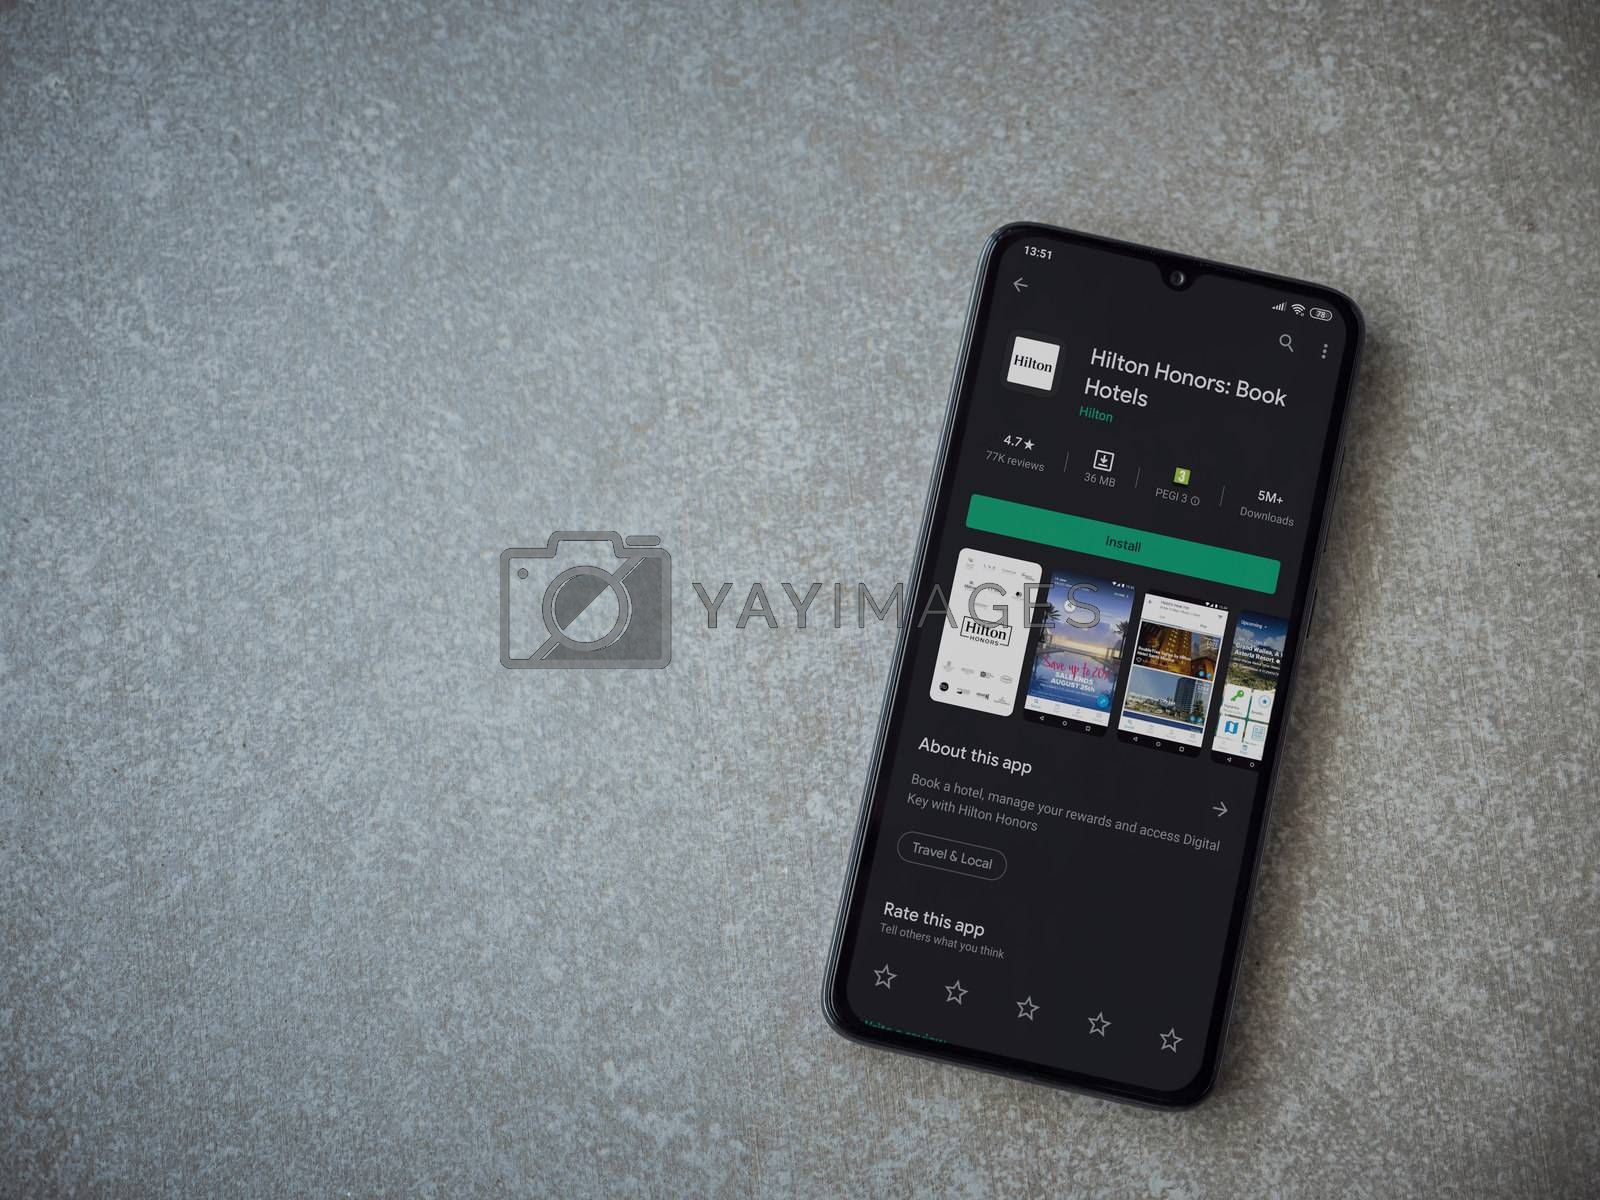 Lod, Israel - July 8, 2020: Hilton Honors app play store page on the display of a black mobile smartphone on ceramic stone background. Top view flat lay with copy space.